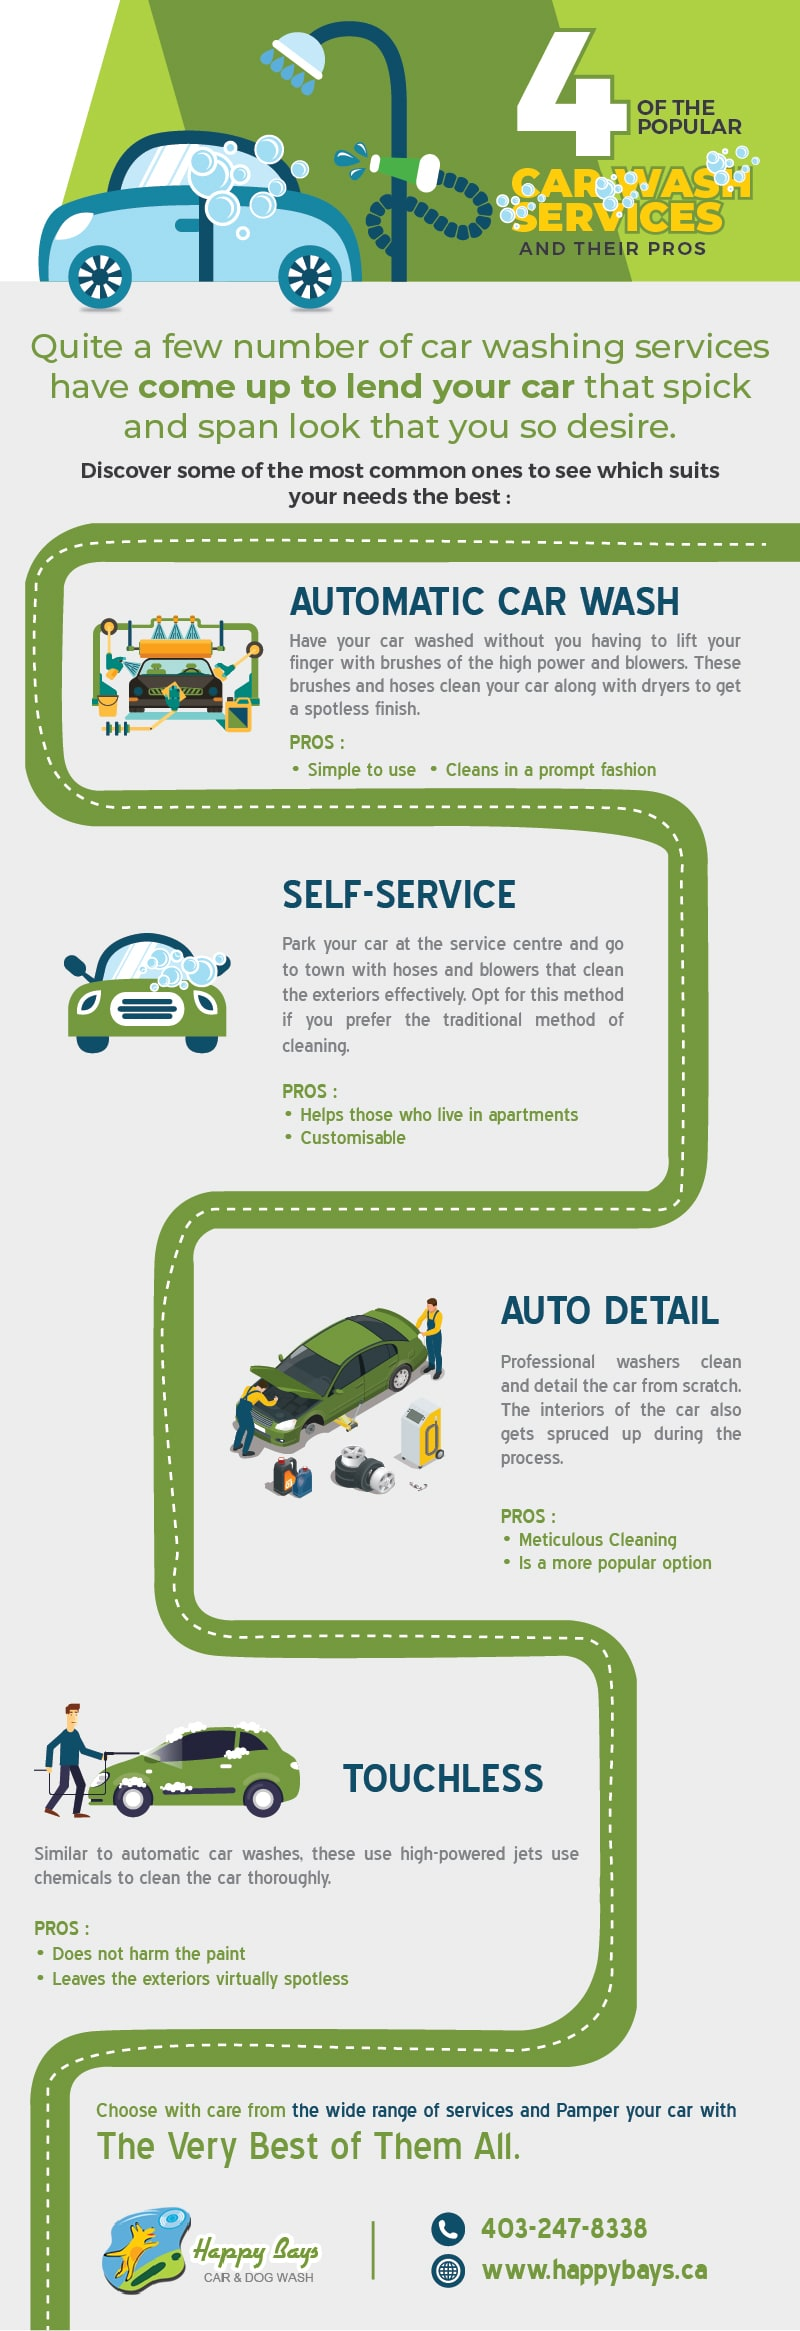 4 Of The Popular Car Wash Services And Their Pros